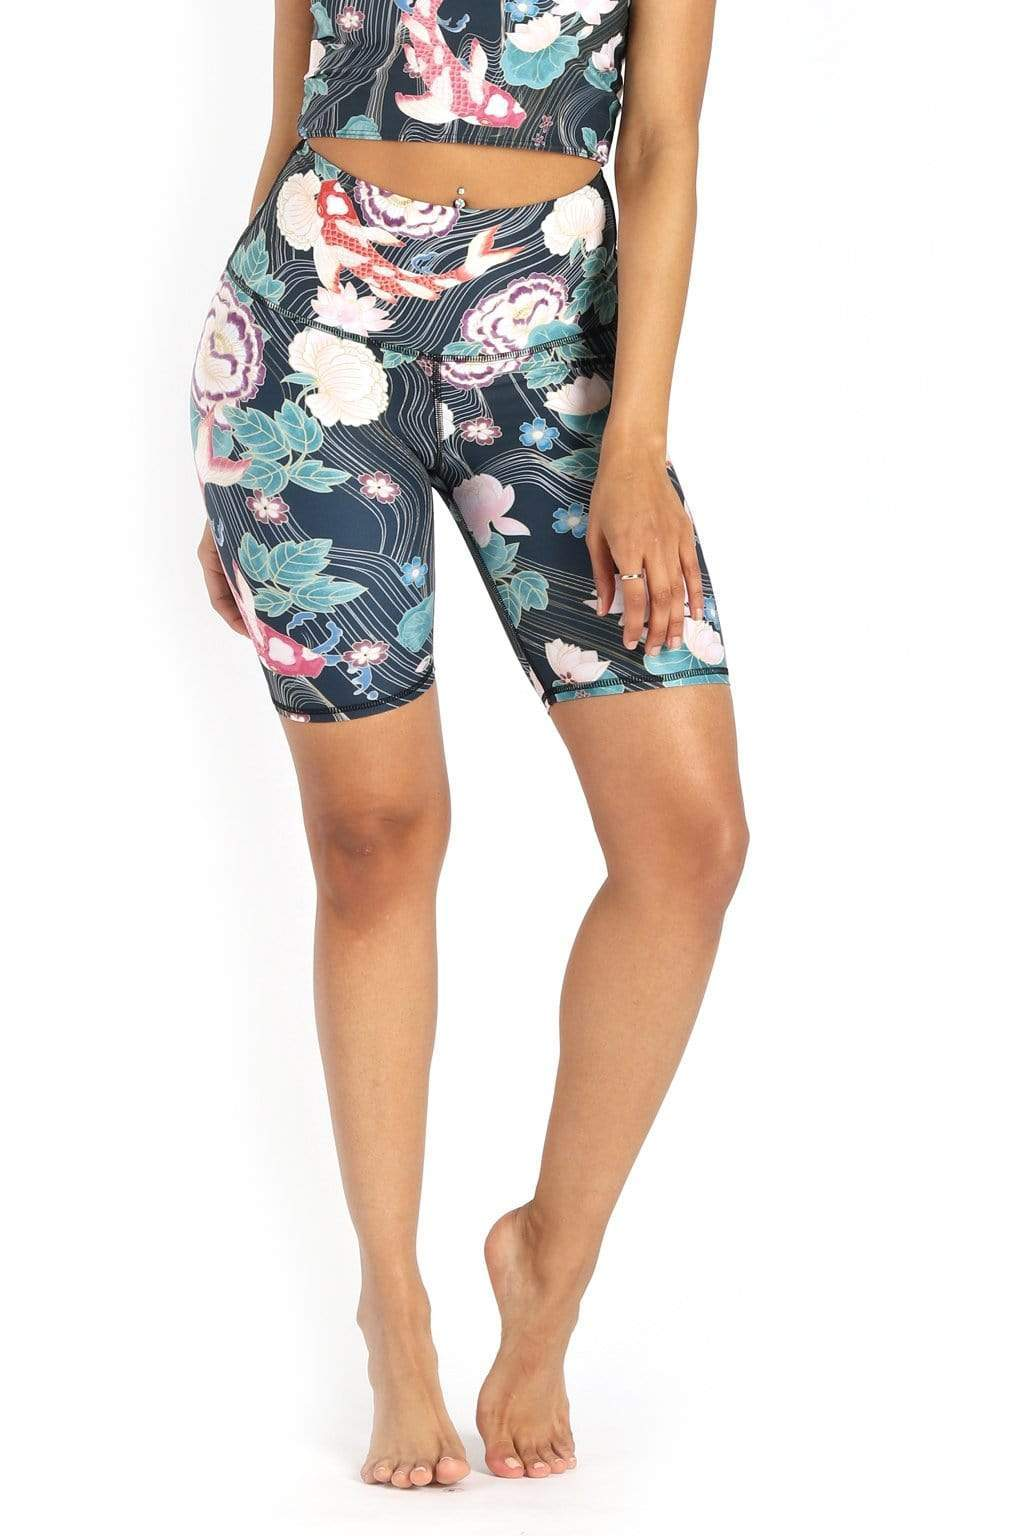 Yoga Democracy Shorts Biker Joey Short in Clever Koi